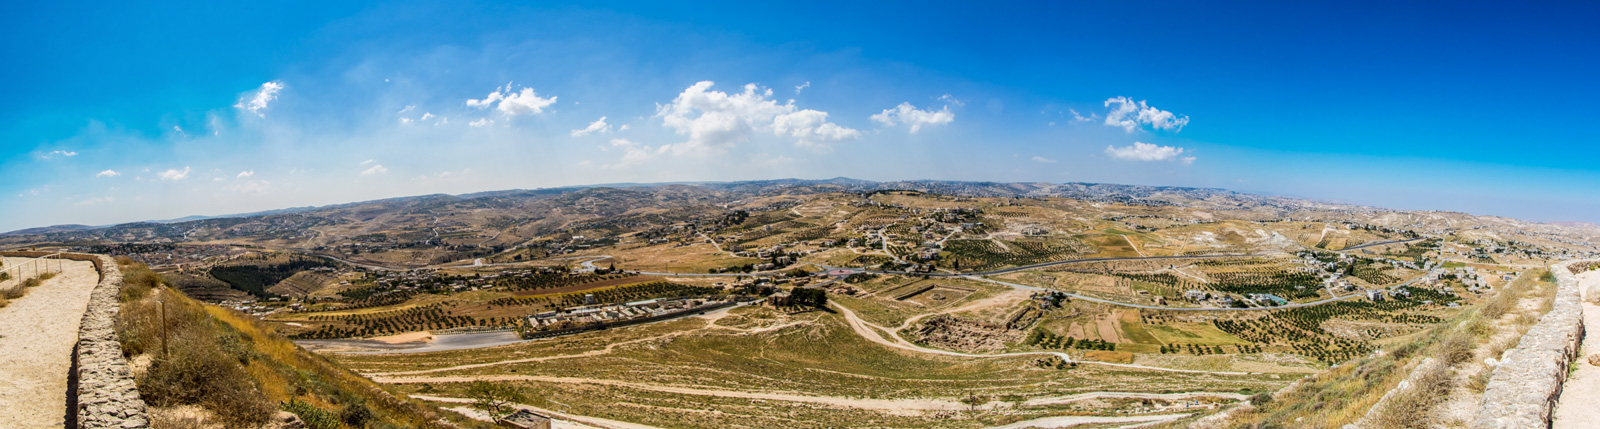 The panoramic view of Bethlehem and the surrounding area from the top of Herodium.